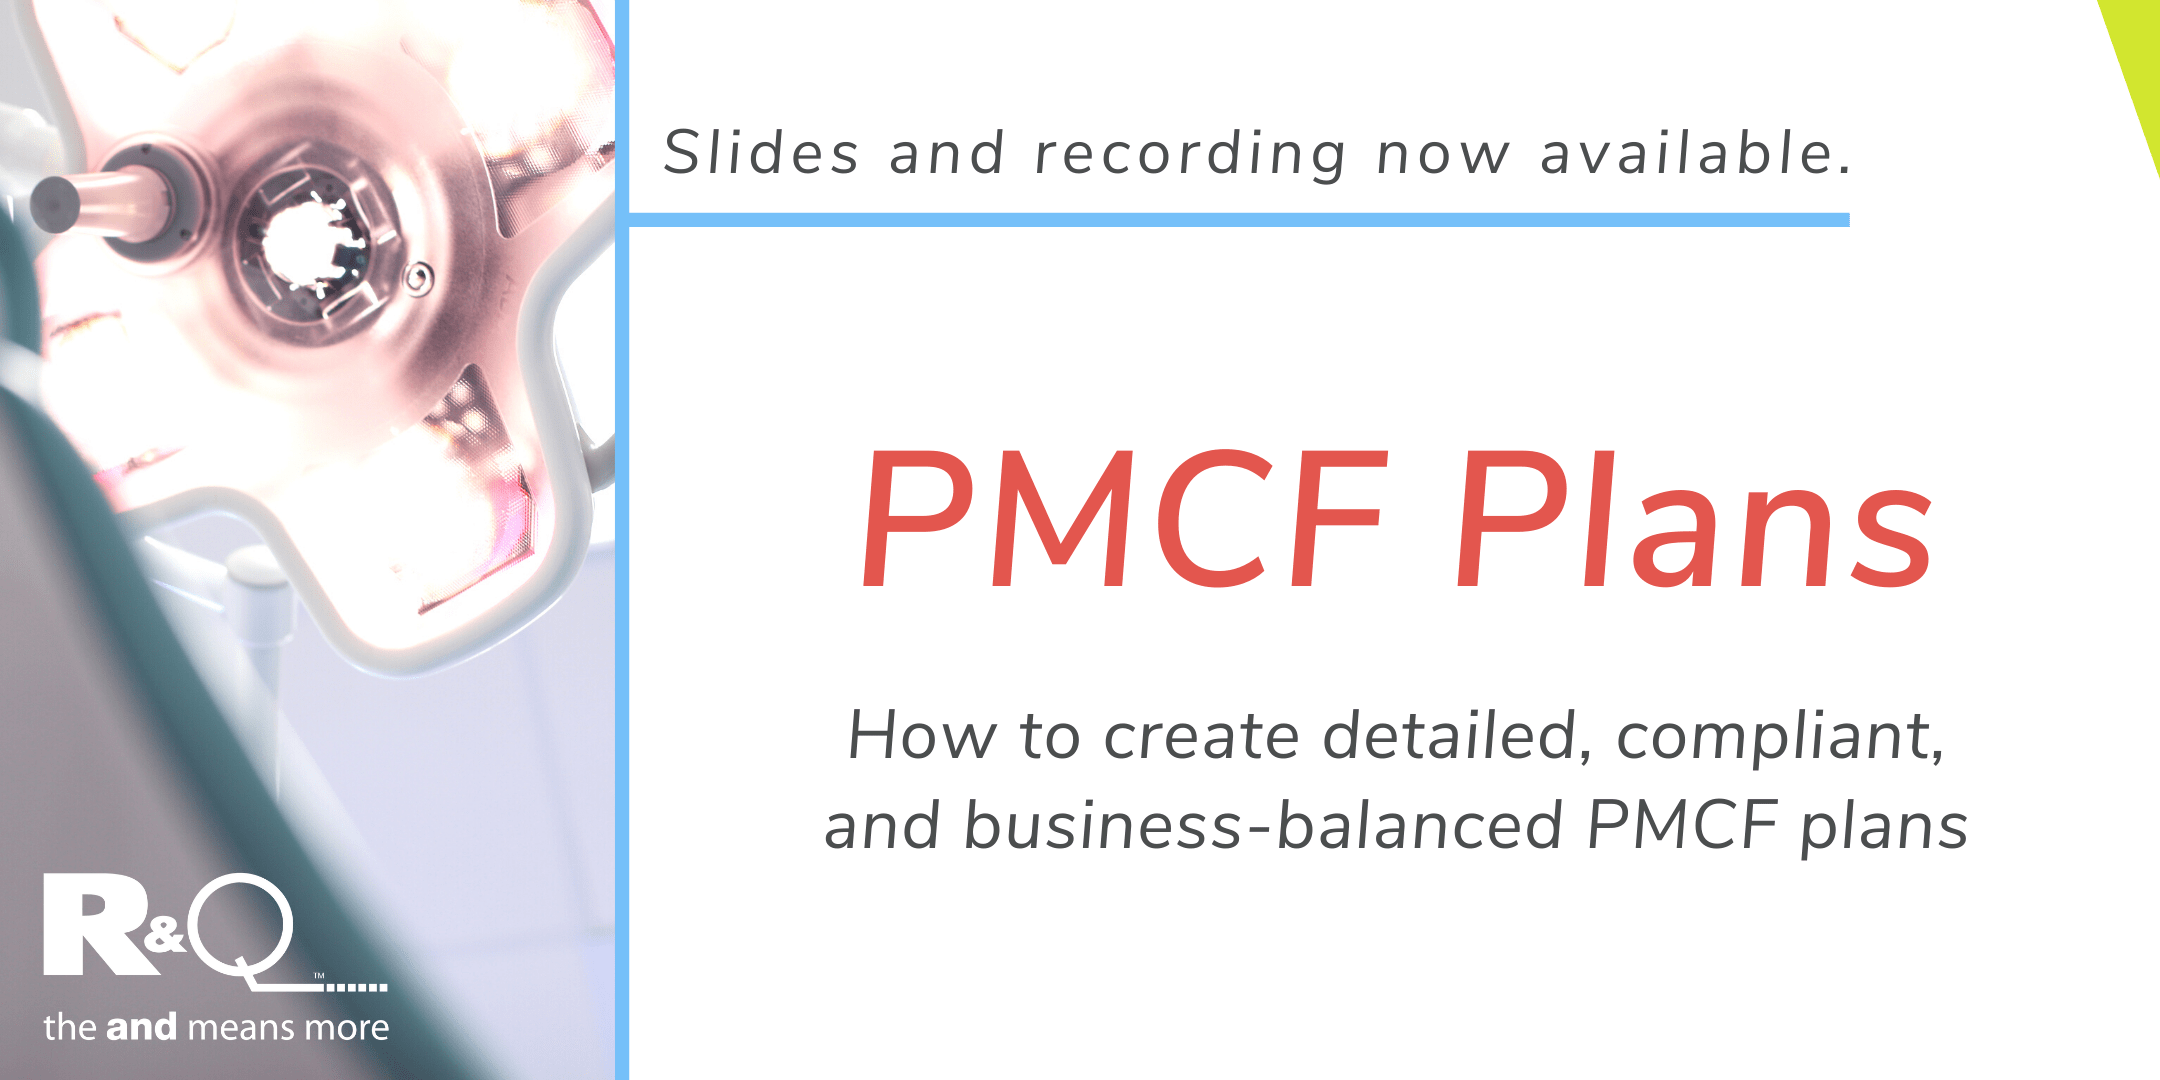 RQ_WB_PMCF_Plans_Slides_Available-min